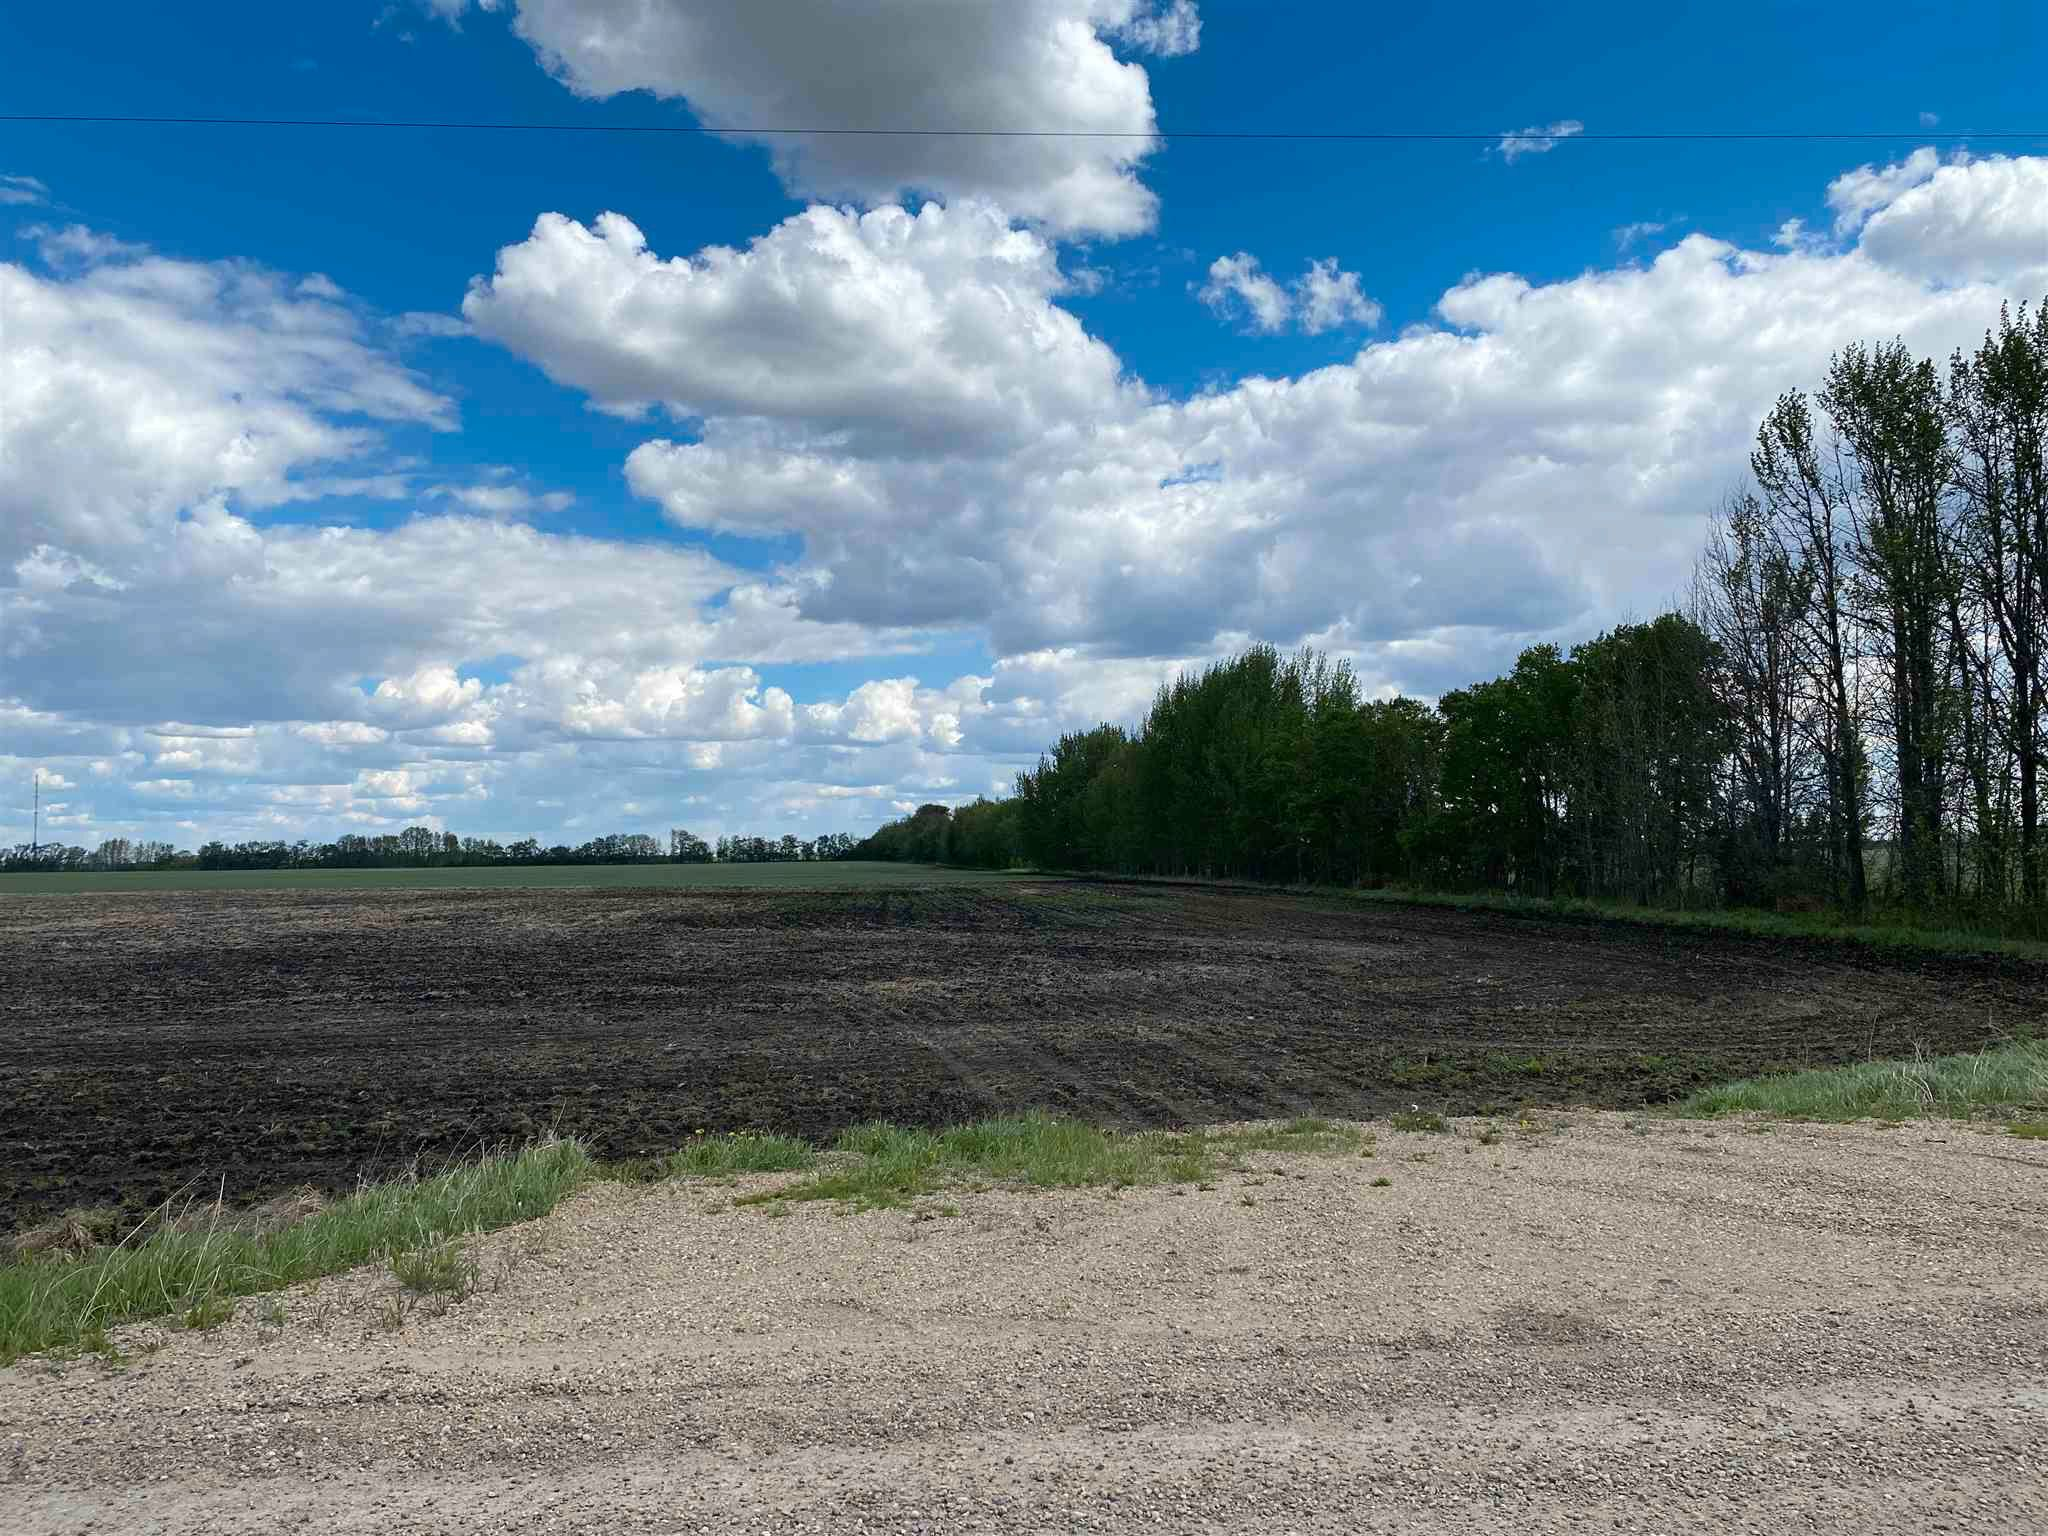 Main Photo: NW 34-49-27-W4 none: Rural Leduc County Rural Land/Vacant Lot for sale : MLS®# E4247276